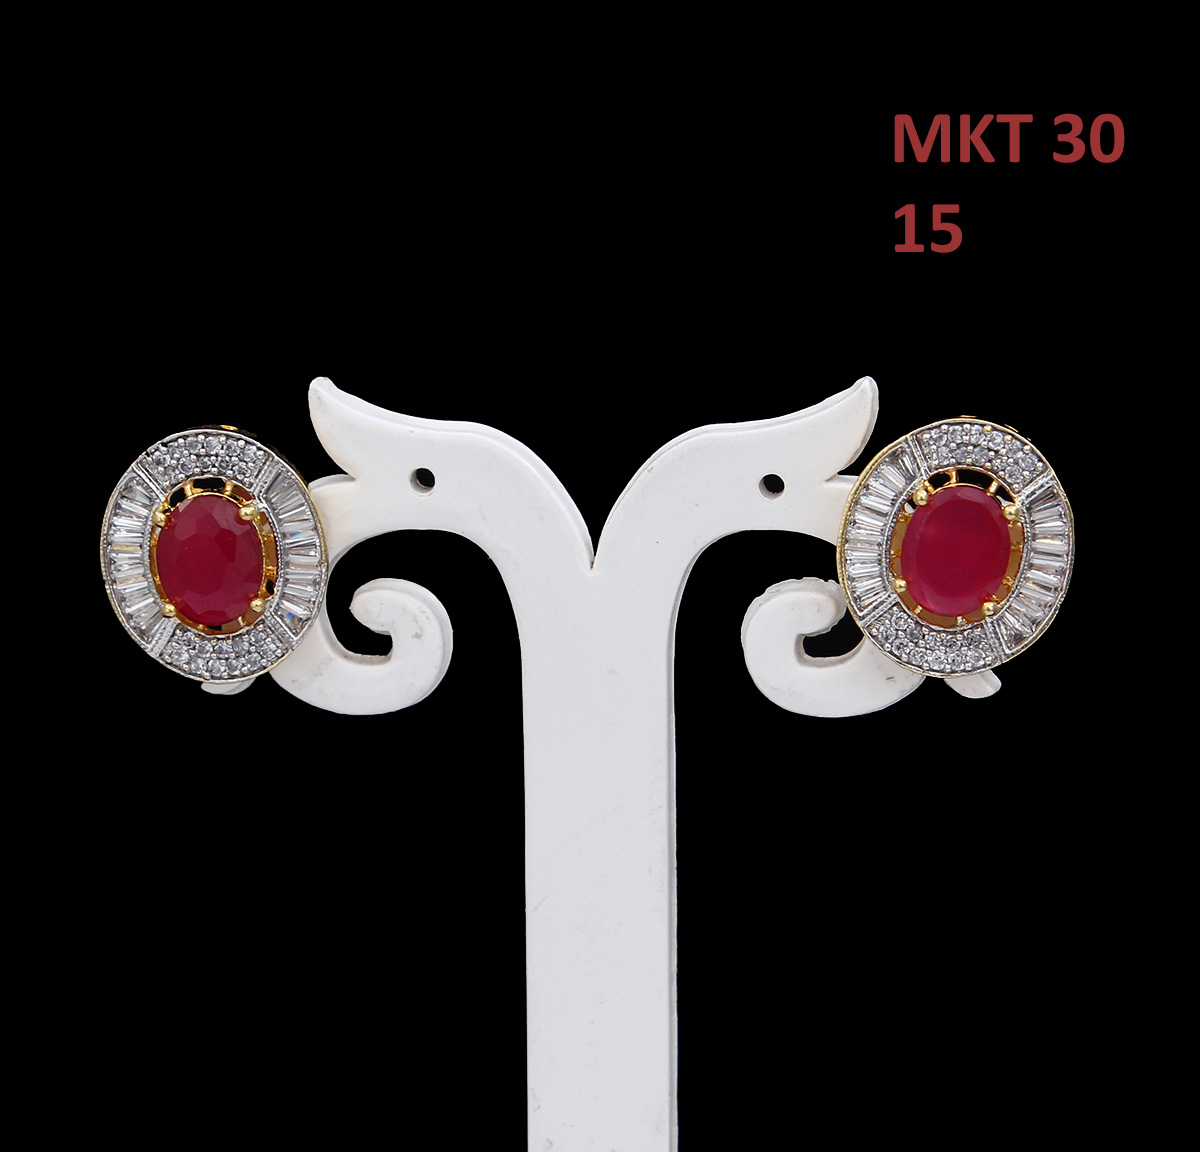 55Carat | 55Carat Ear Tops Gold Plated Red Ruby, Cubic Zircon Rich Designer Fashion Jewellery Tops Ear Tops,Gold Plated,Red Ruby, Cubic Zircon,Rich Designer Fashion Jewellery Tops MKT-30-RED